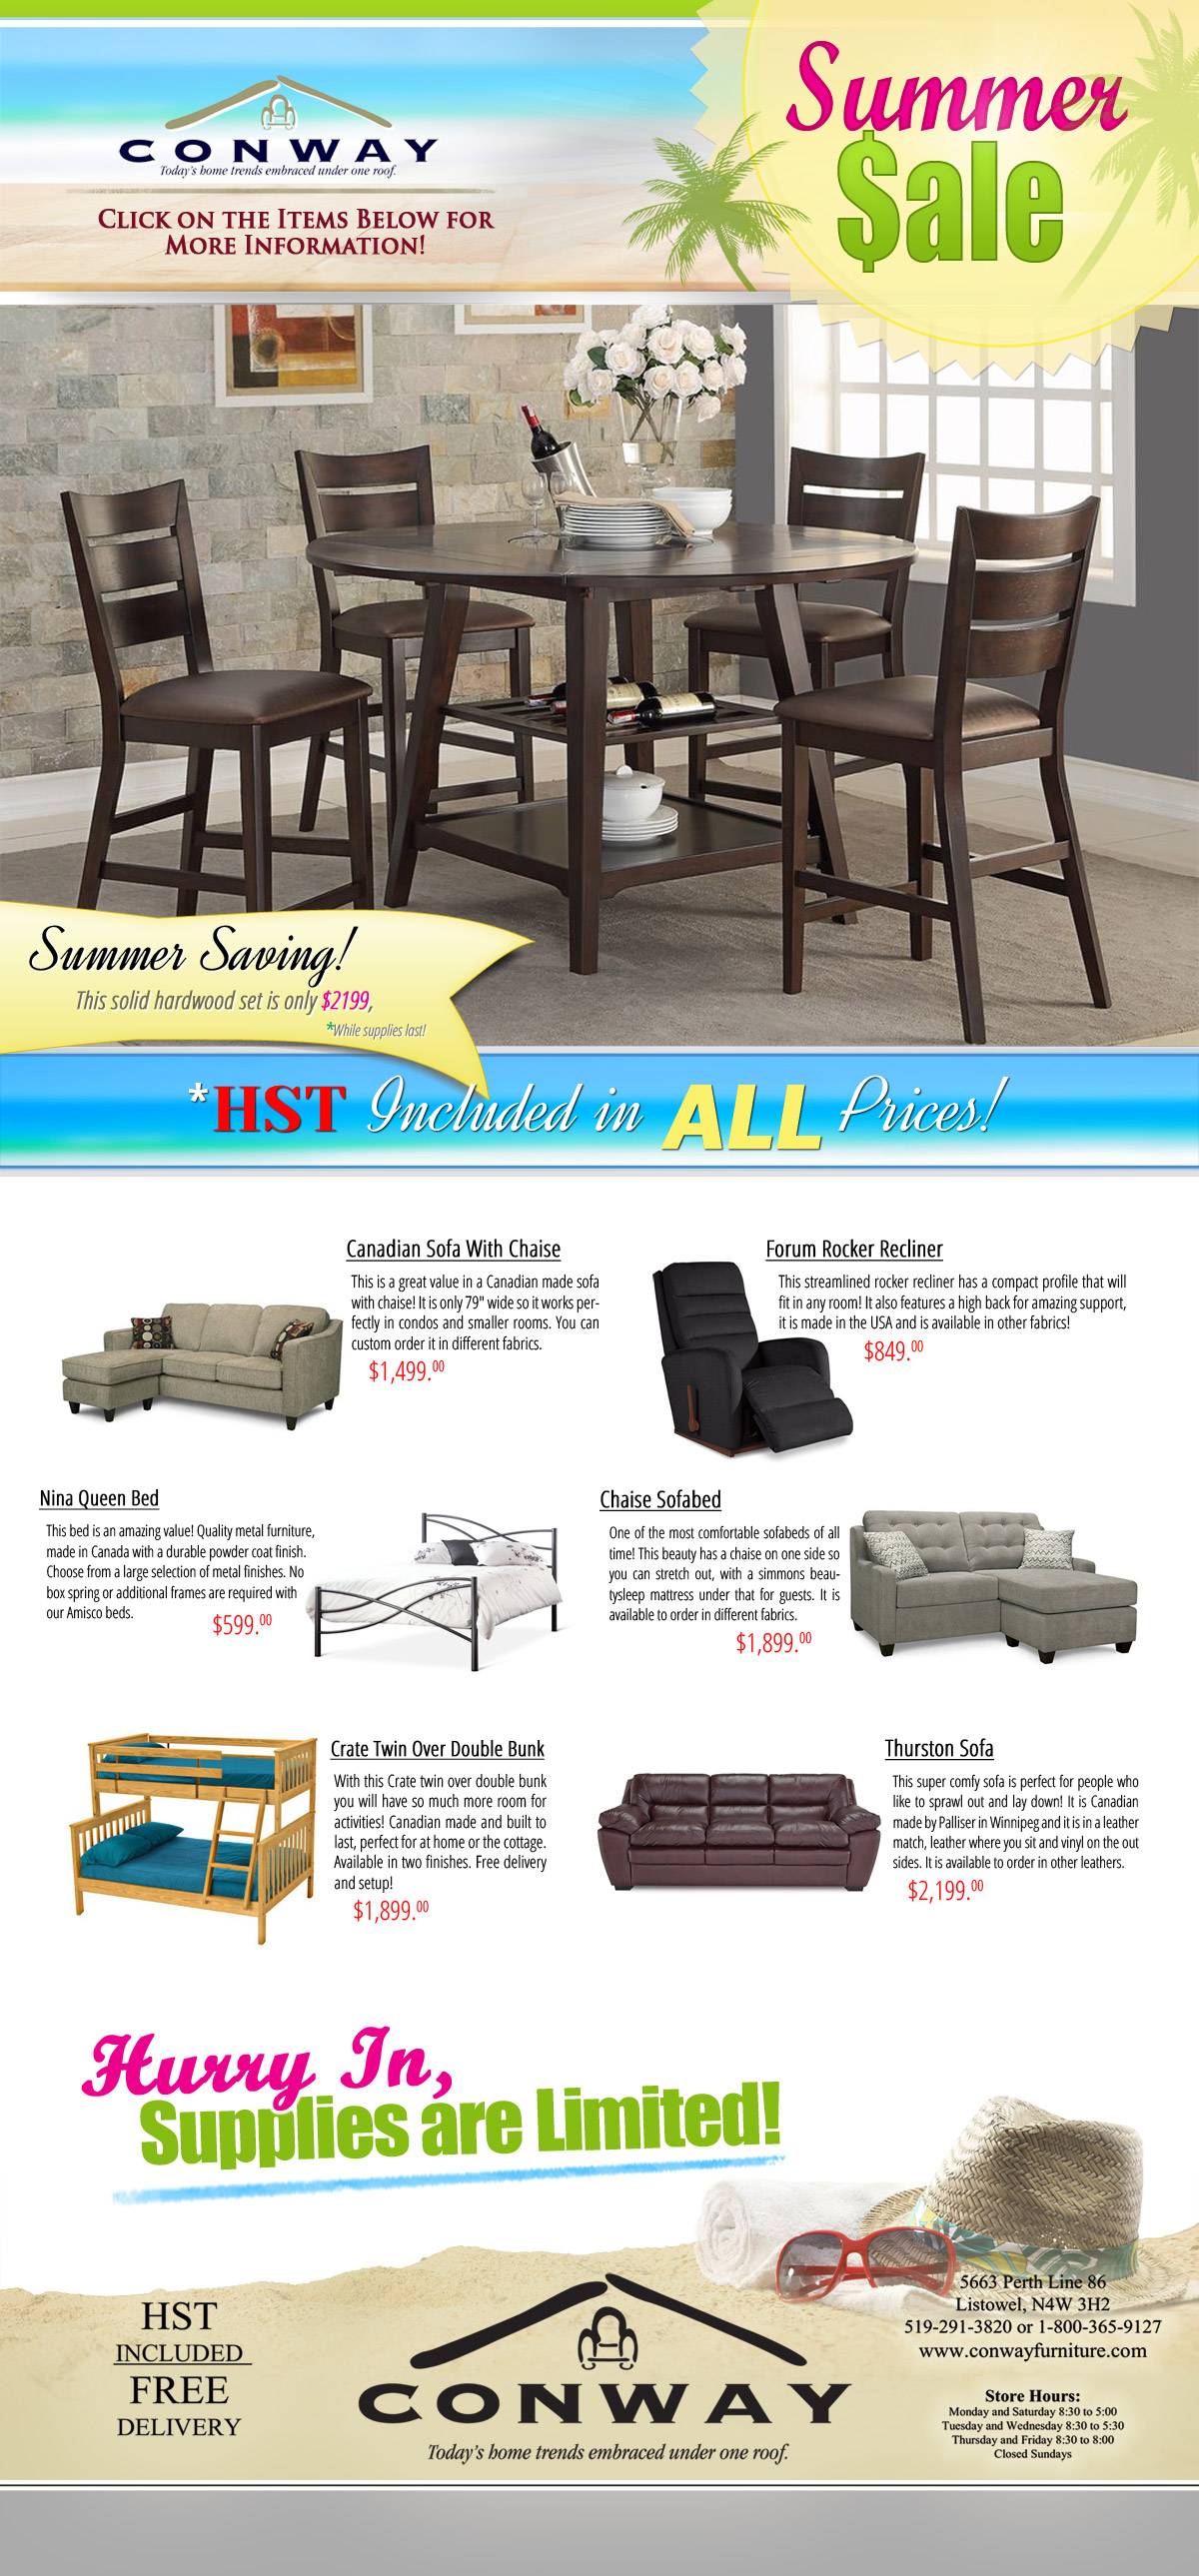 Everyone Is Always Looking For The Best Price And Great Deals On New  Furnishings For Their Bedroom, Living Room Or Dining Room, And At Conway  Furniture, ...